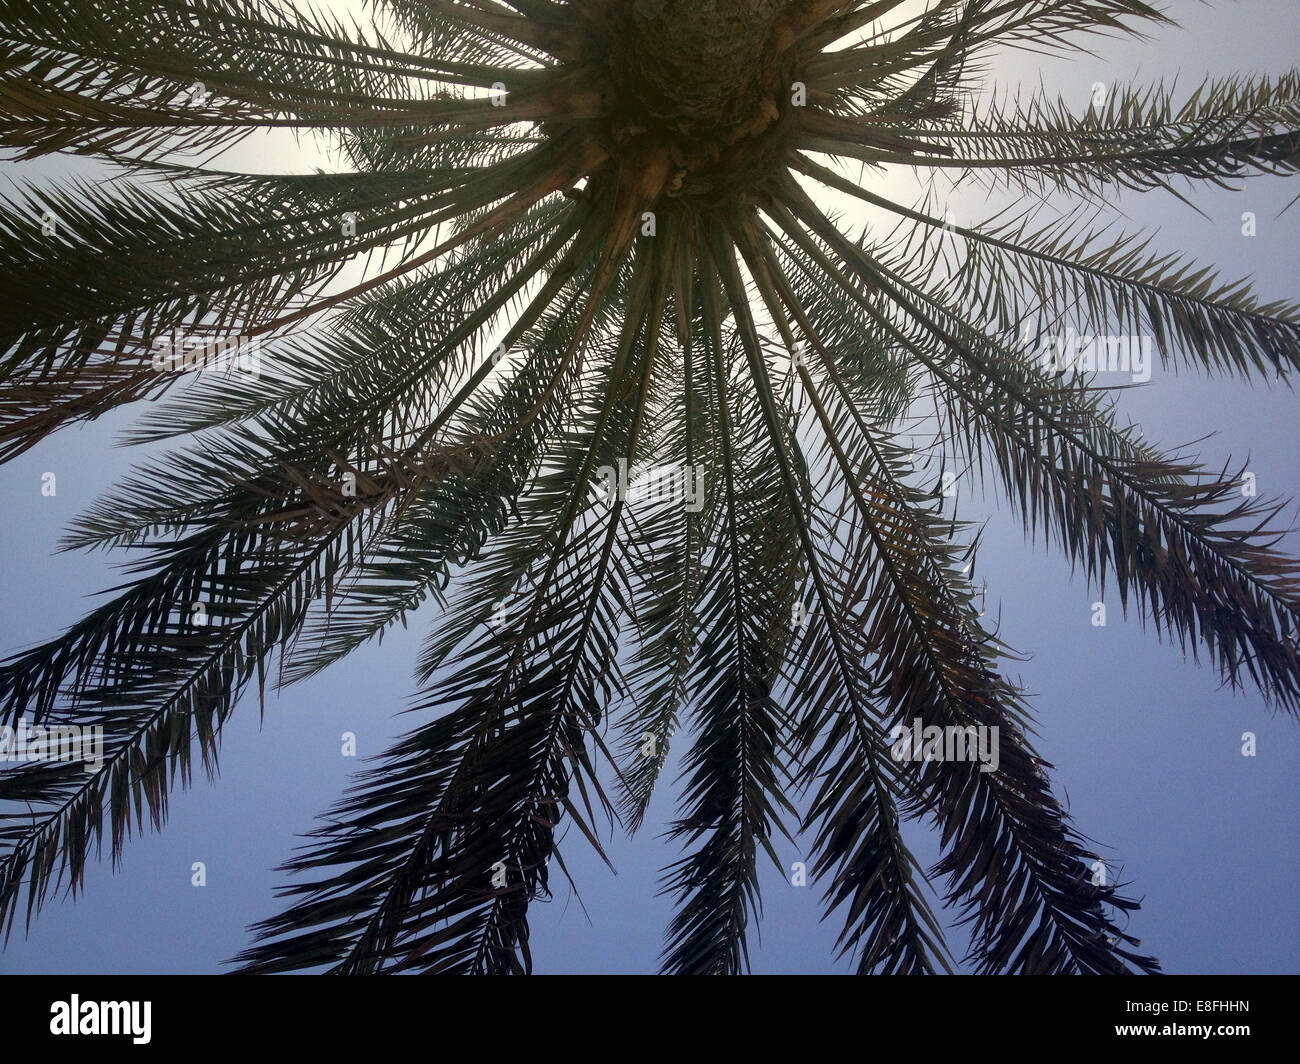 Oman, Muscat, Palm tree from below - Stock Image